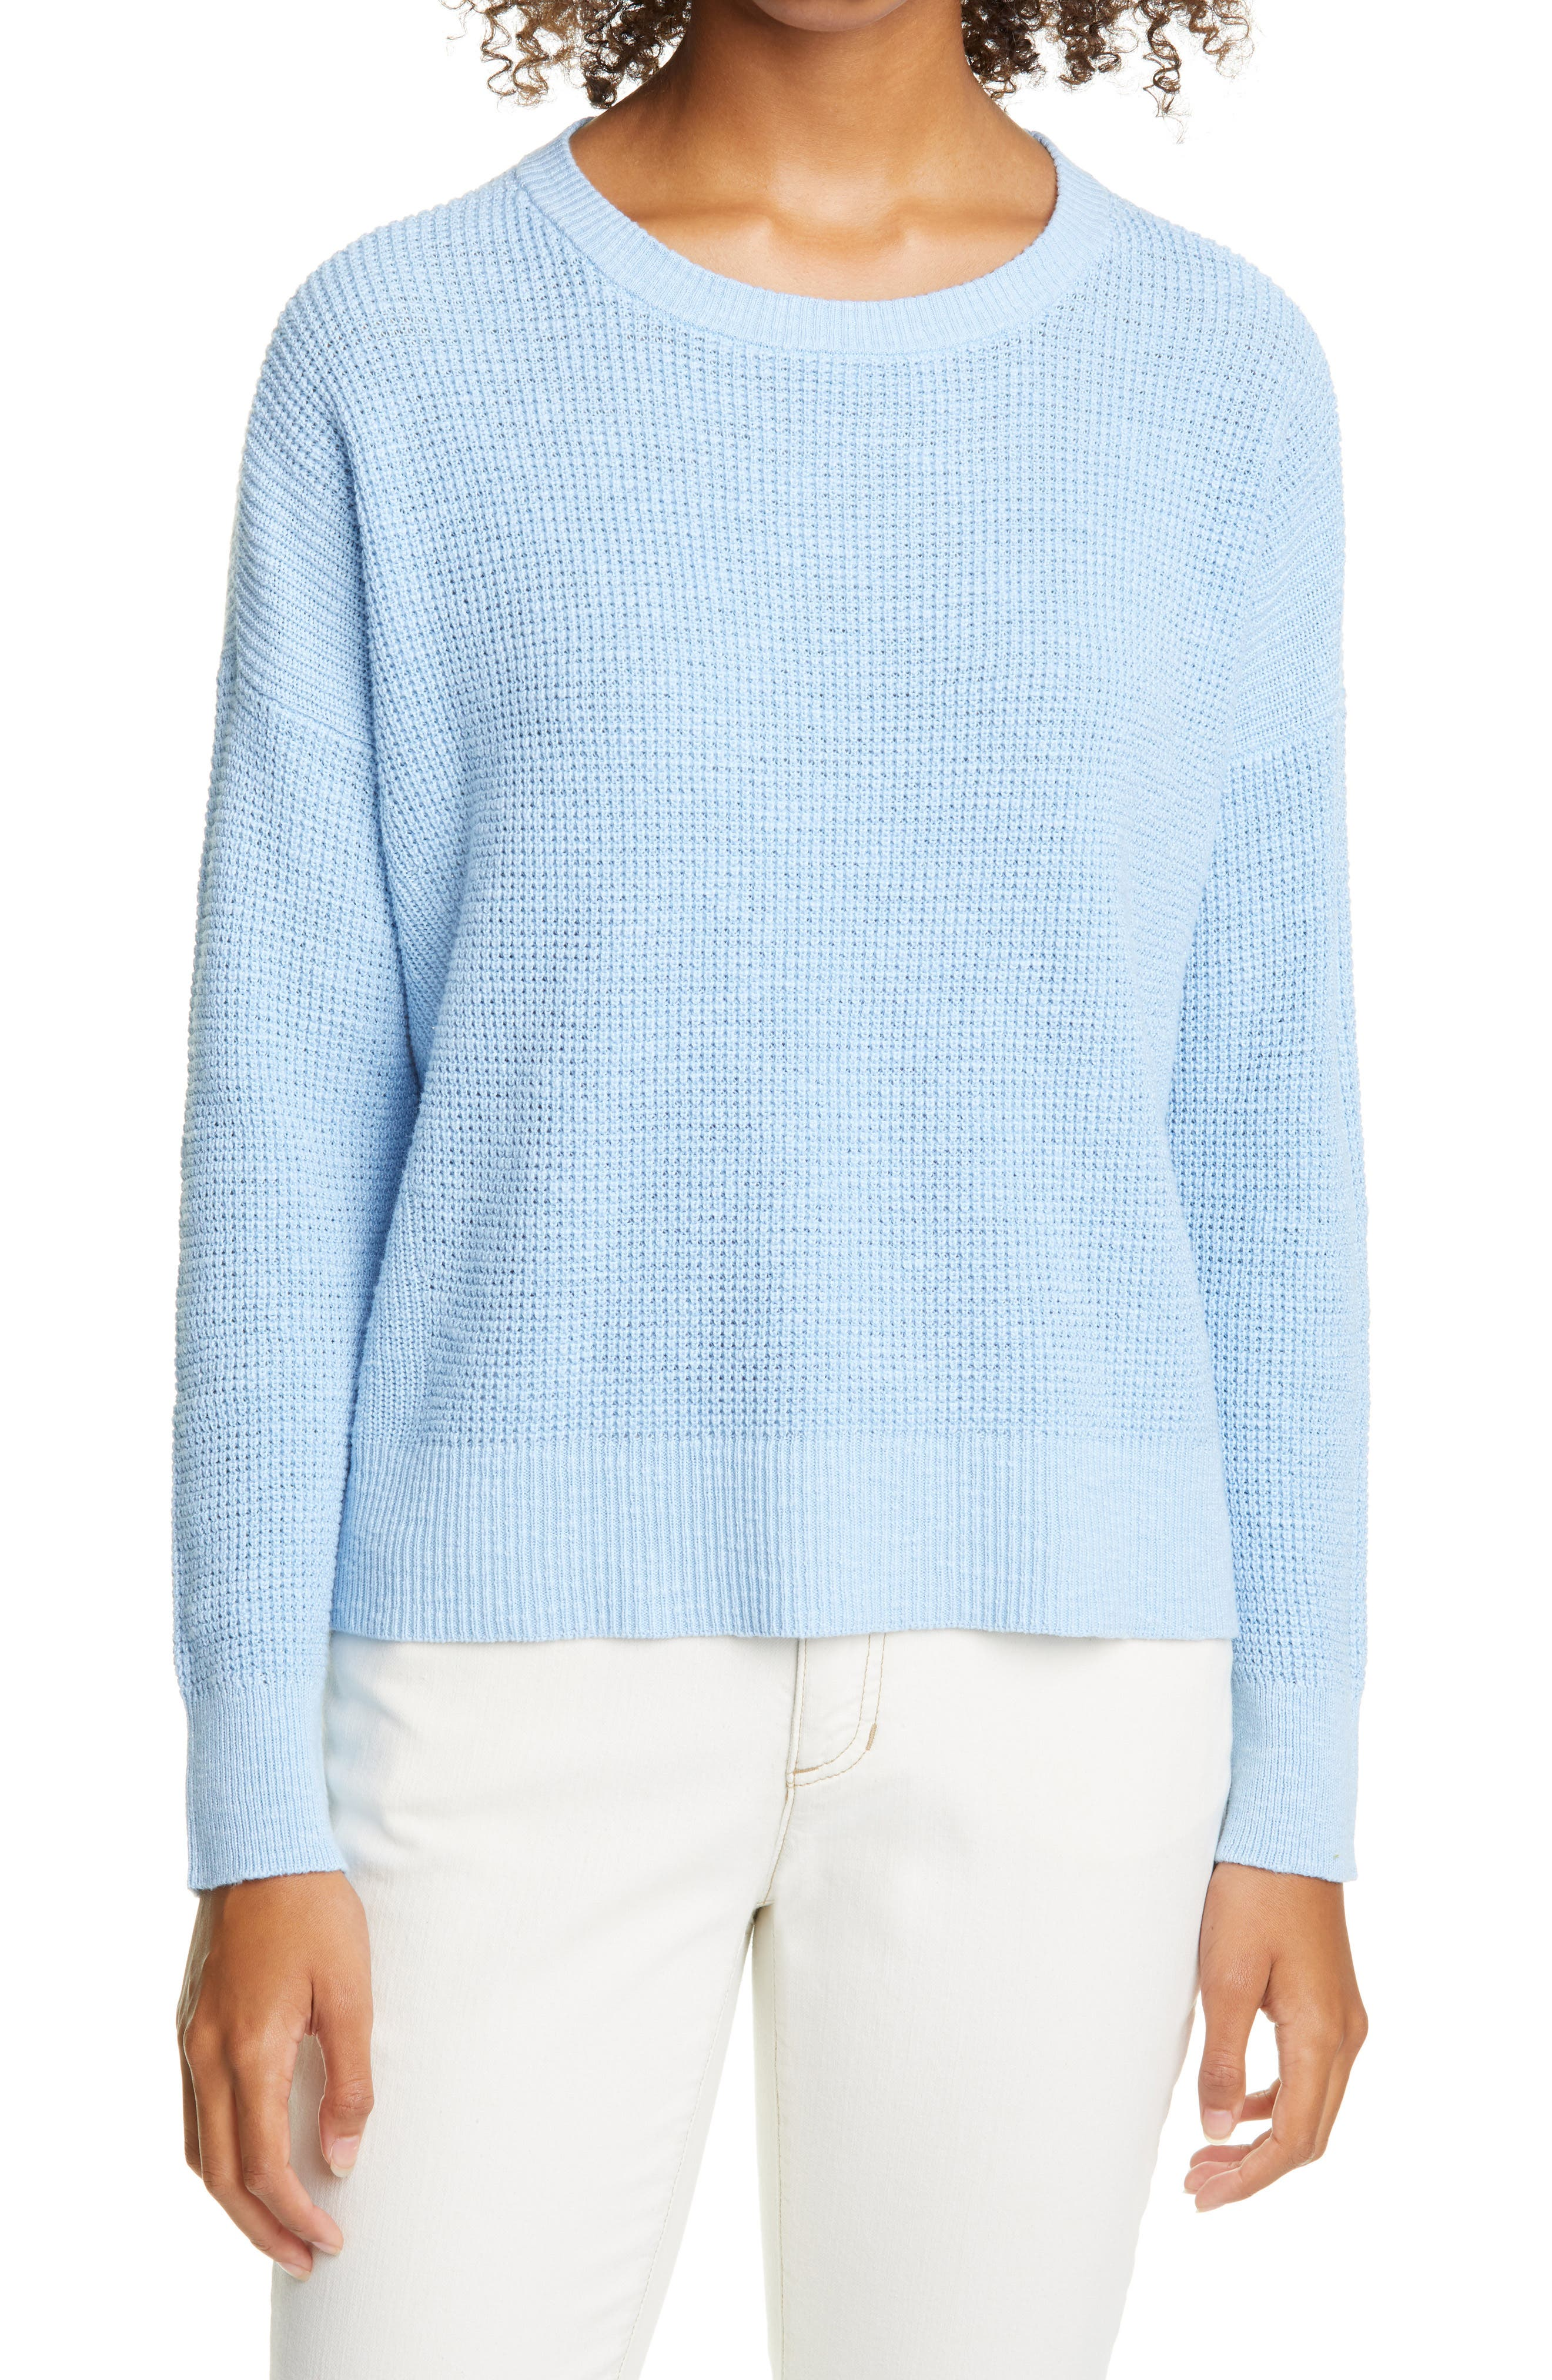 A breathable waffle knit and ribbed trims bring rich texture to this drop-shoulder sweater with a relaxed fit. Style Name: Eileen Fisher Waffle Knit Sweater. Style Number: 6102348. Available in stores.